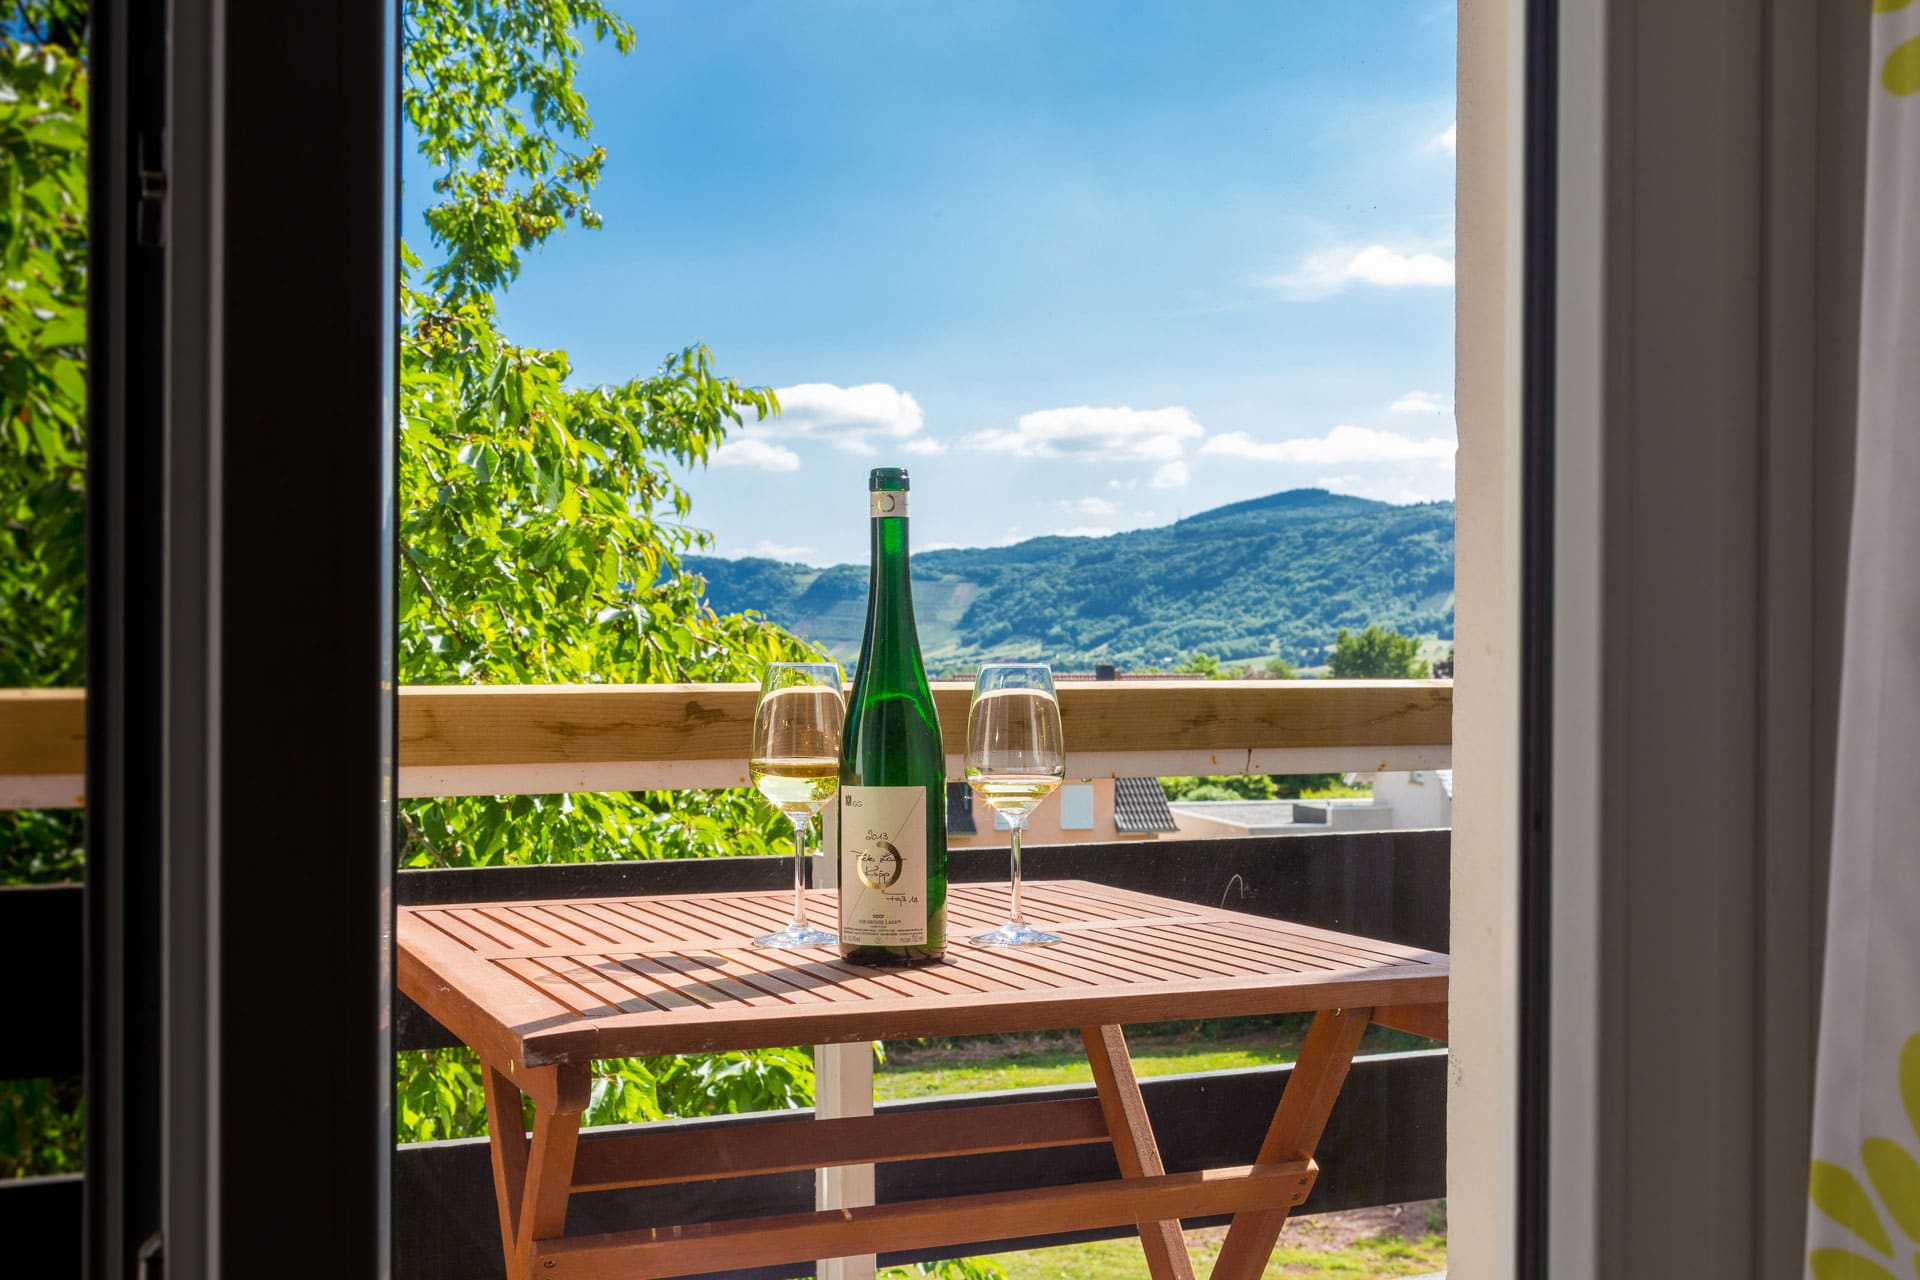 Bottle of wine and glasses on a table on a balcony